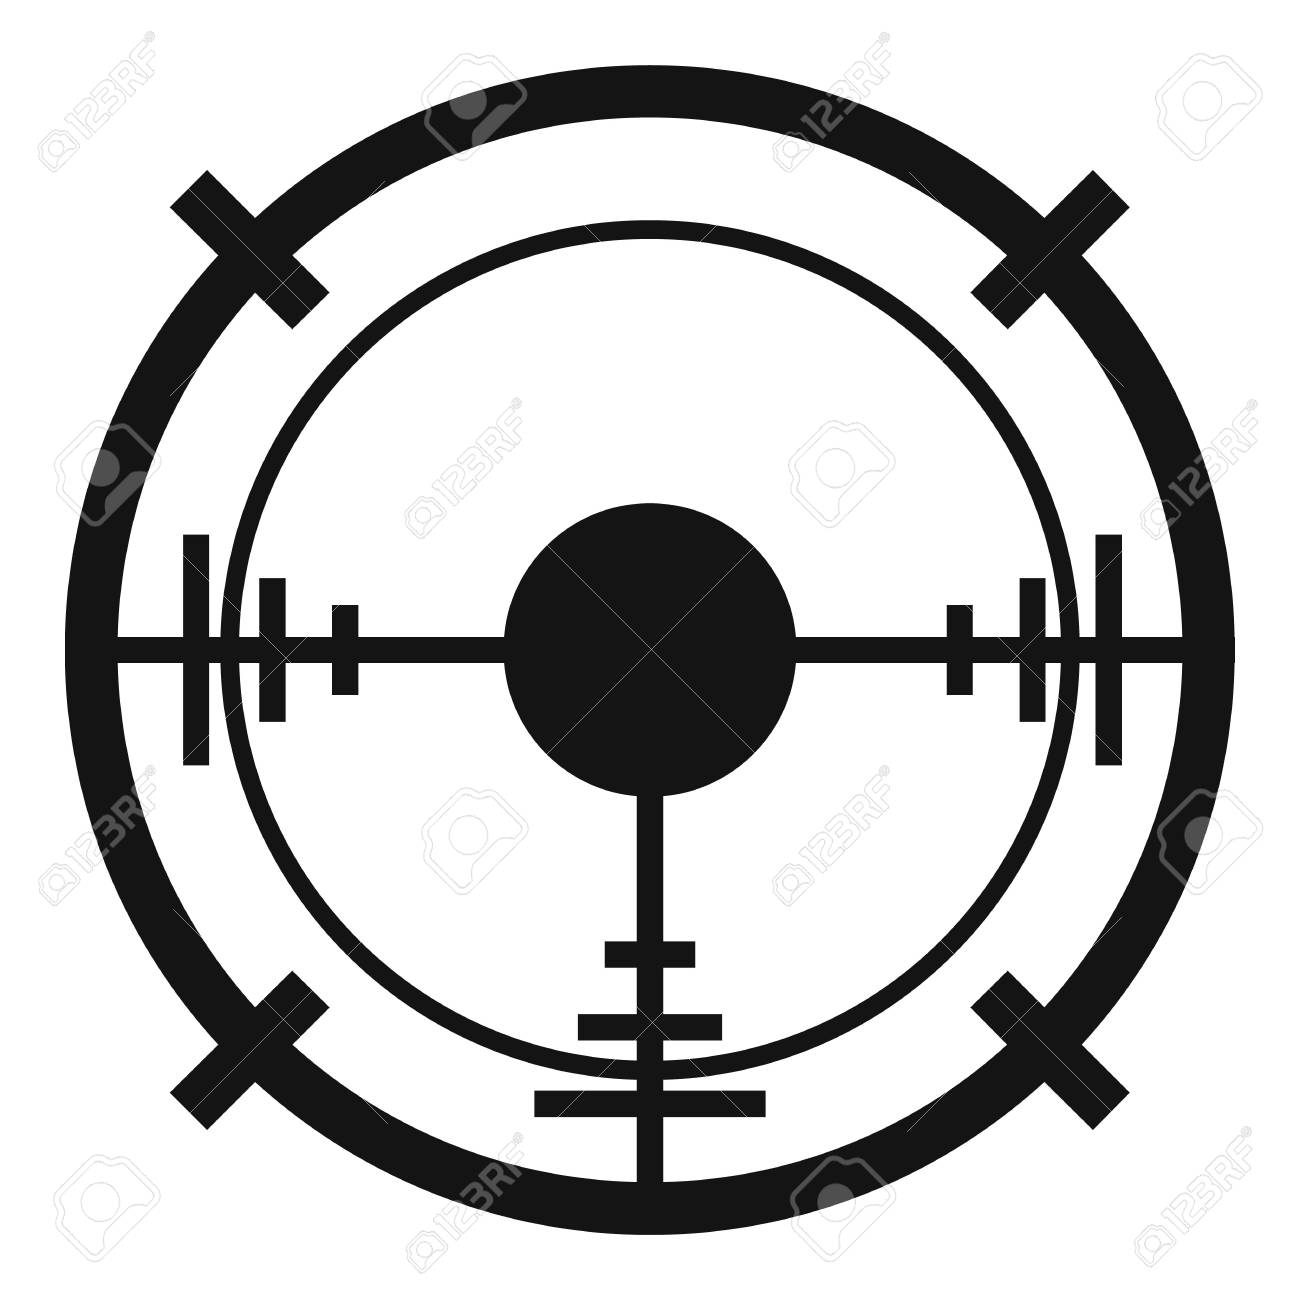 Sniper elite aim icon. Simple - Sniper Elite Clipart